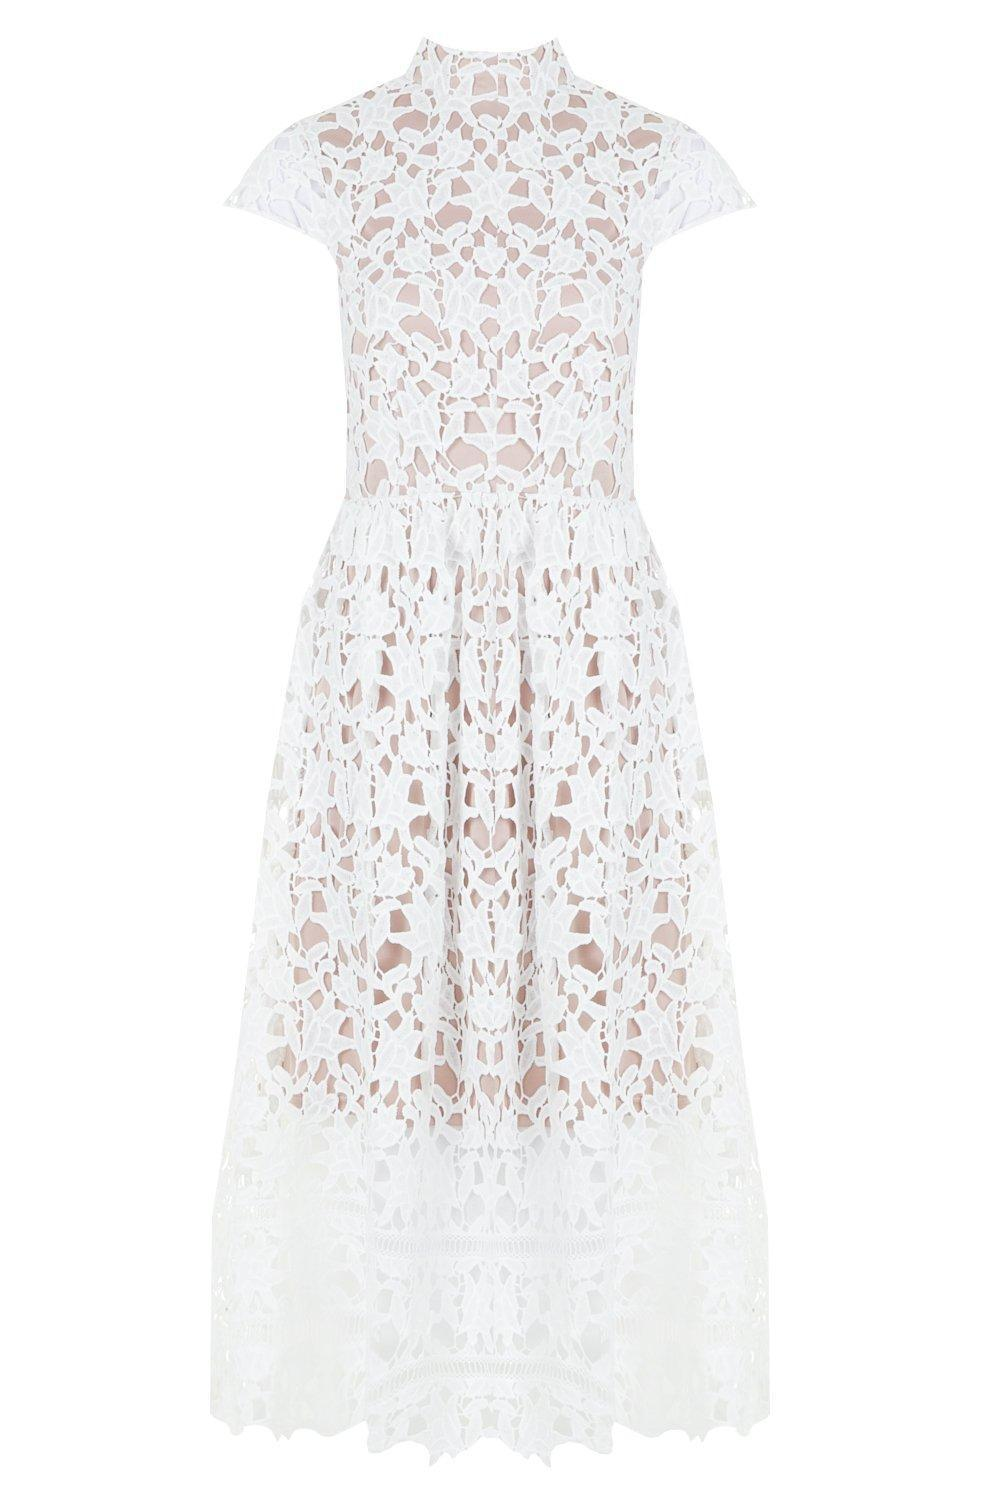 075d1979e493b Boohoo Boutique Lace High Neck Skater Dress in White - Lyst